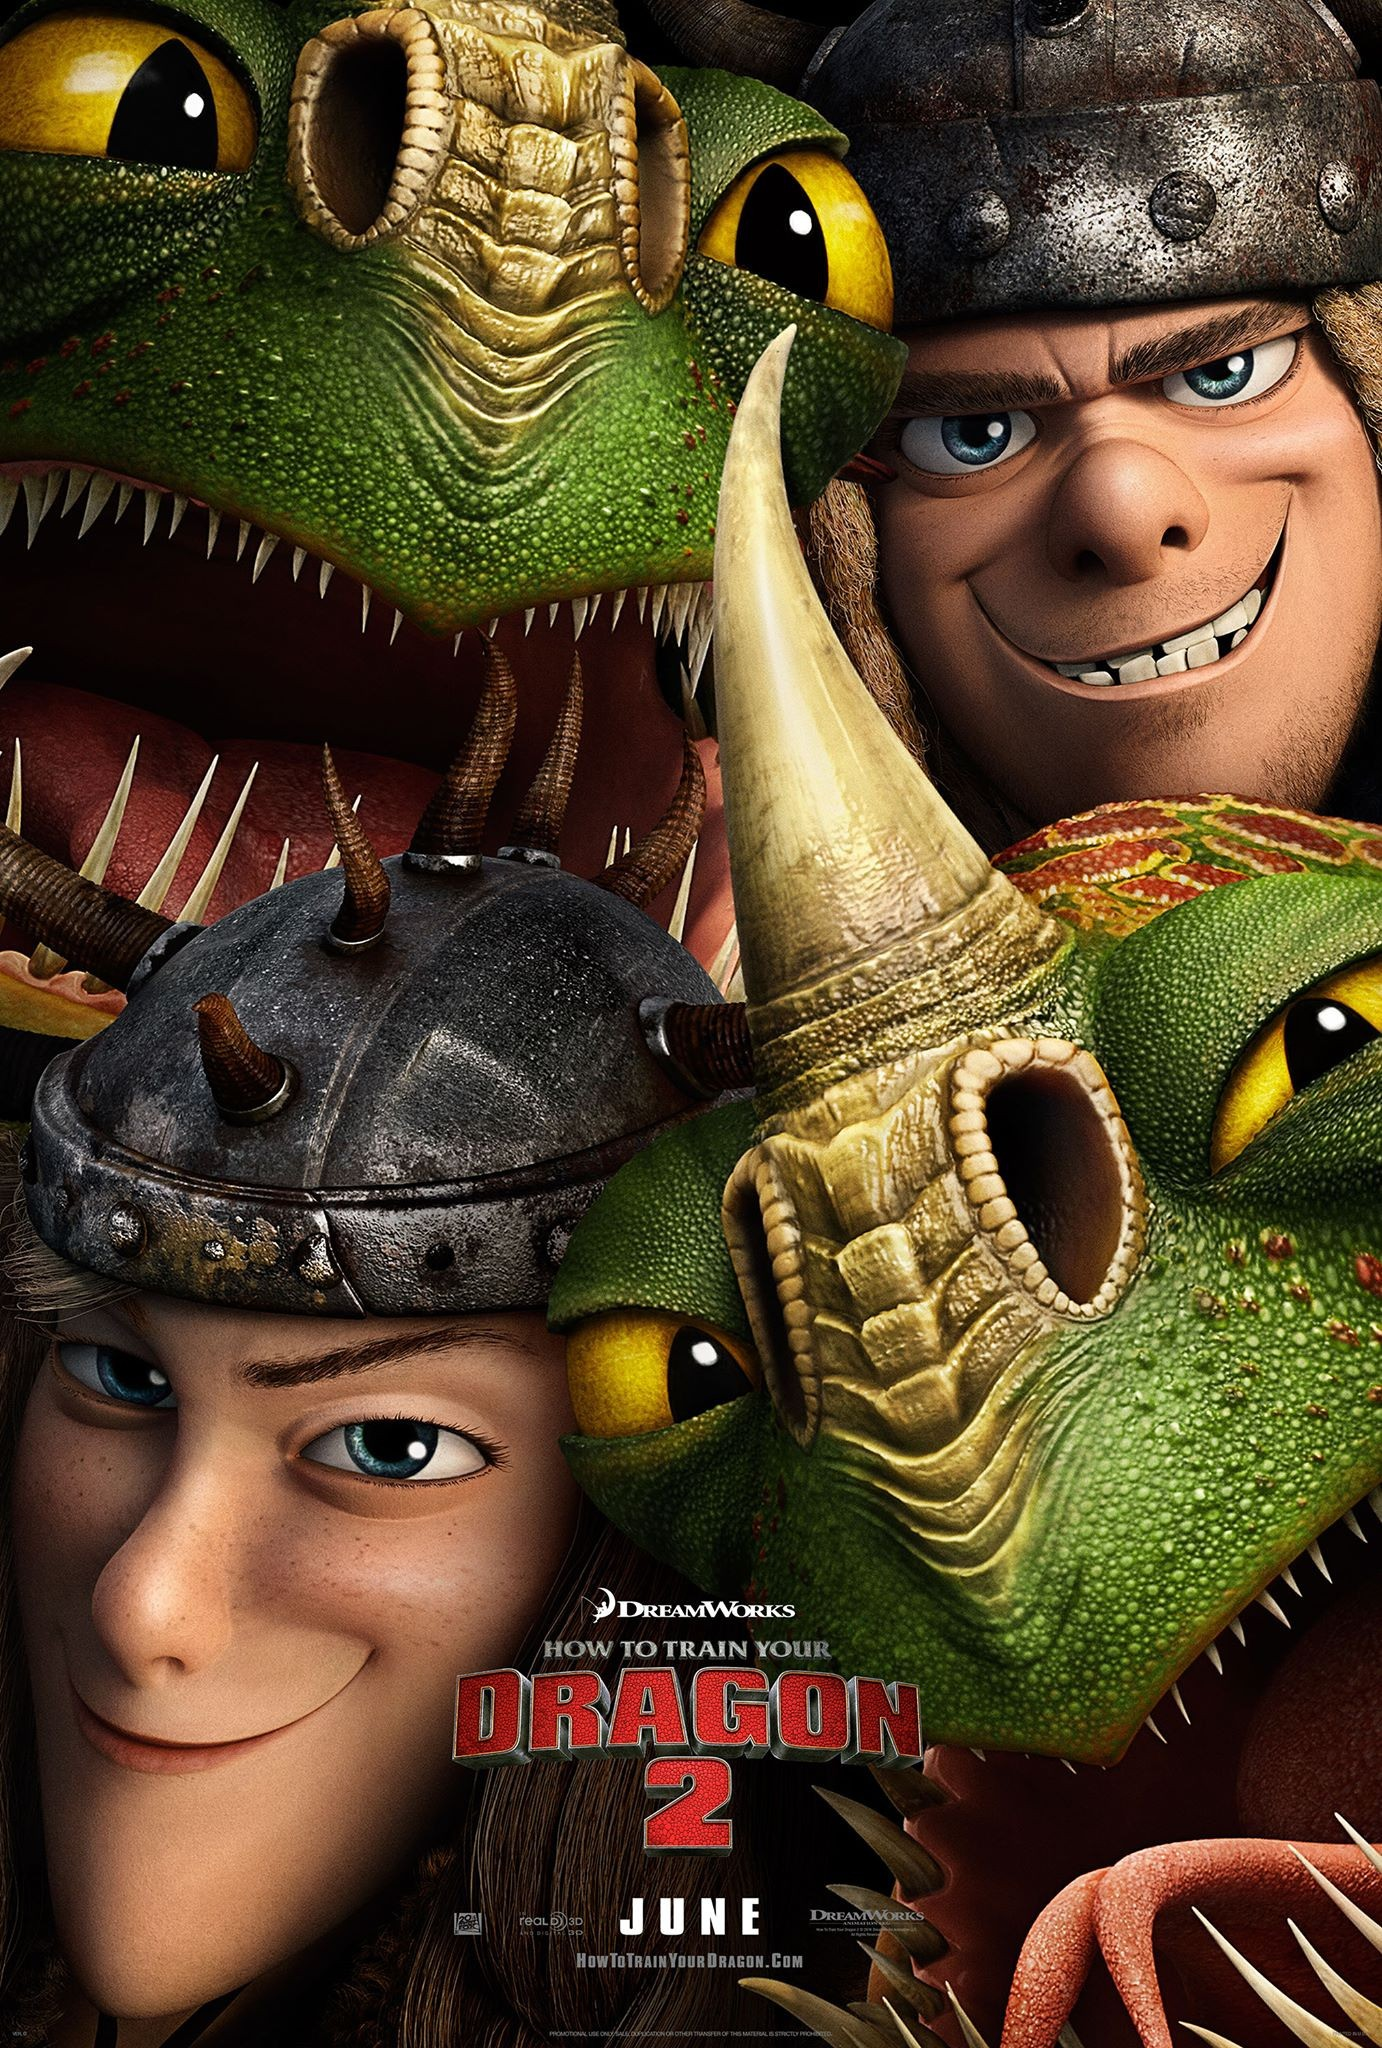 How to Train Your Dragon 2-Official Poster Banner PROMO POSTER XXLG-03FEVEREIRO2014